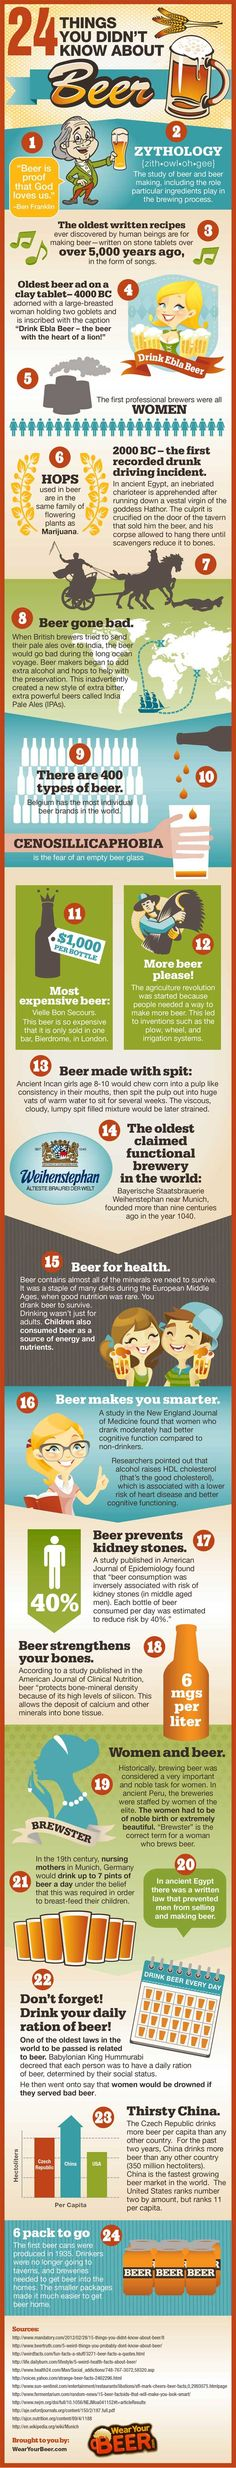 24 Fun Facts About #Beer [Infographic]